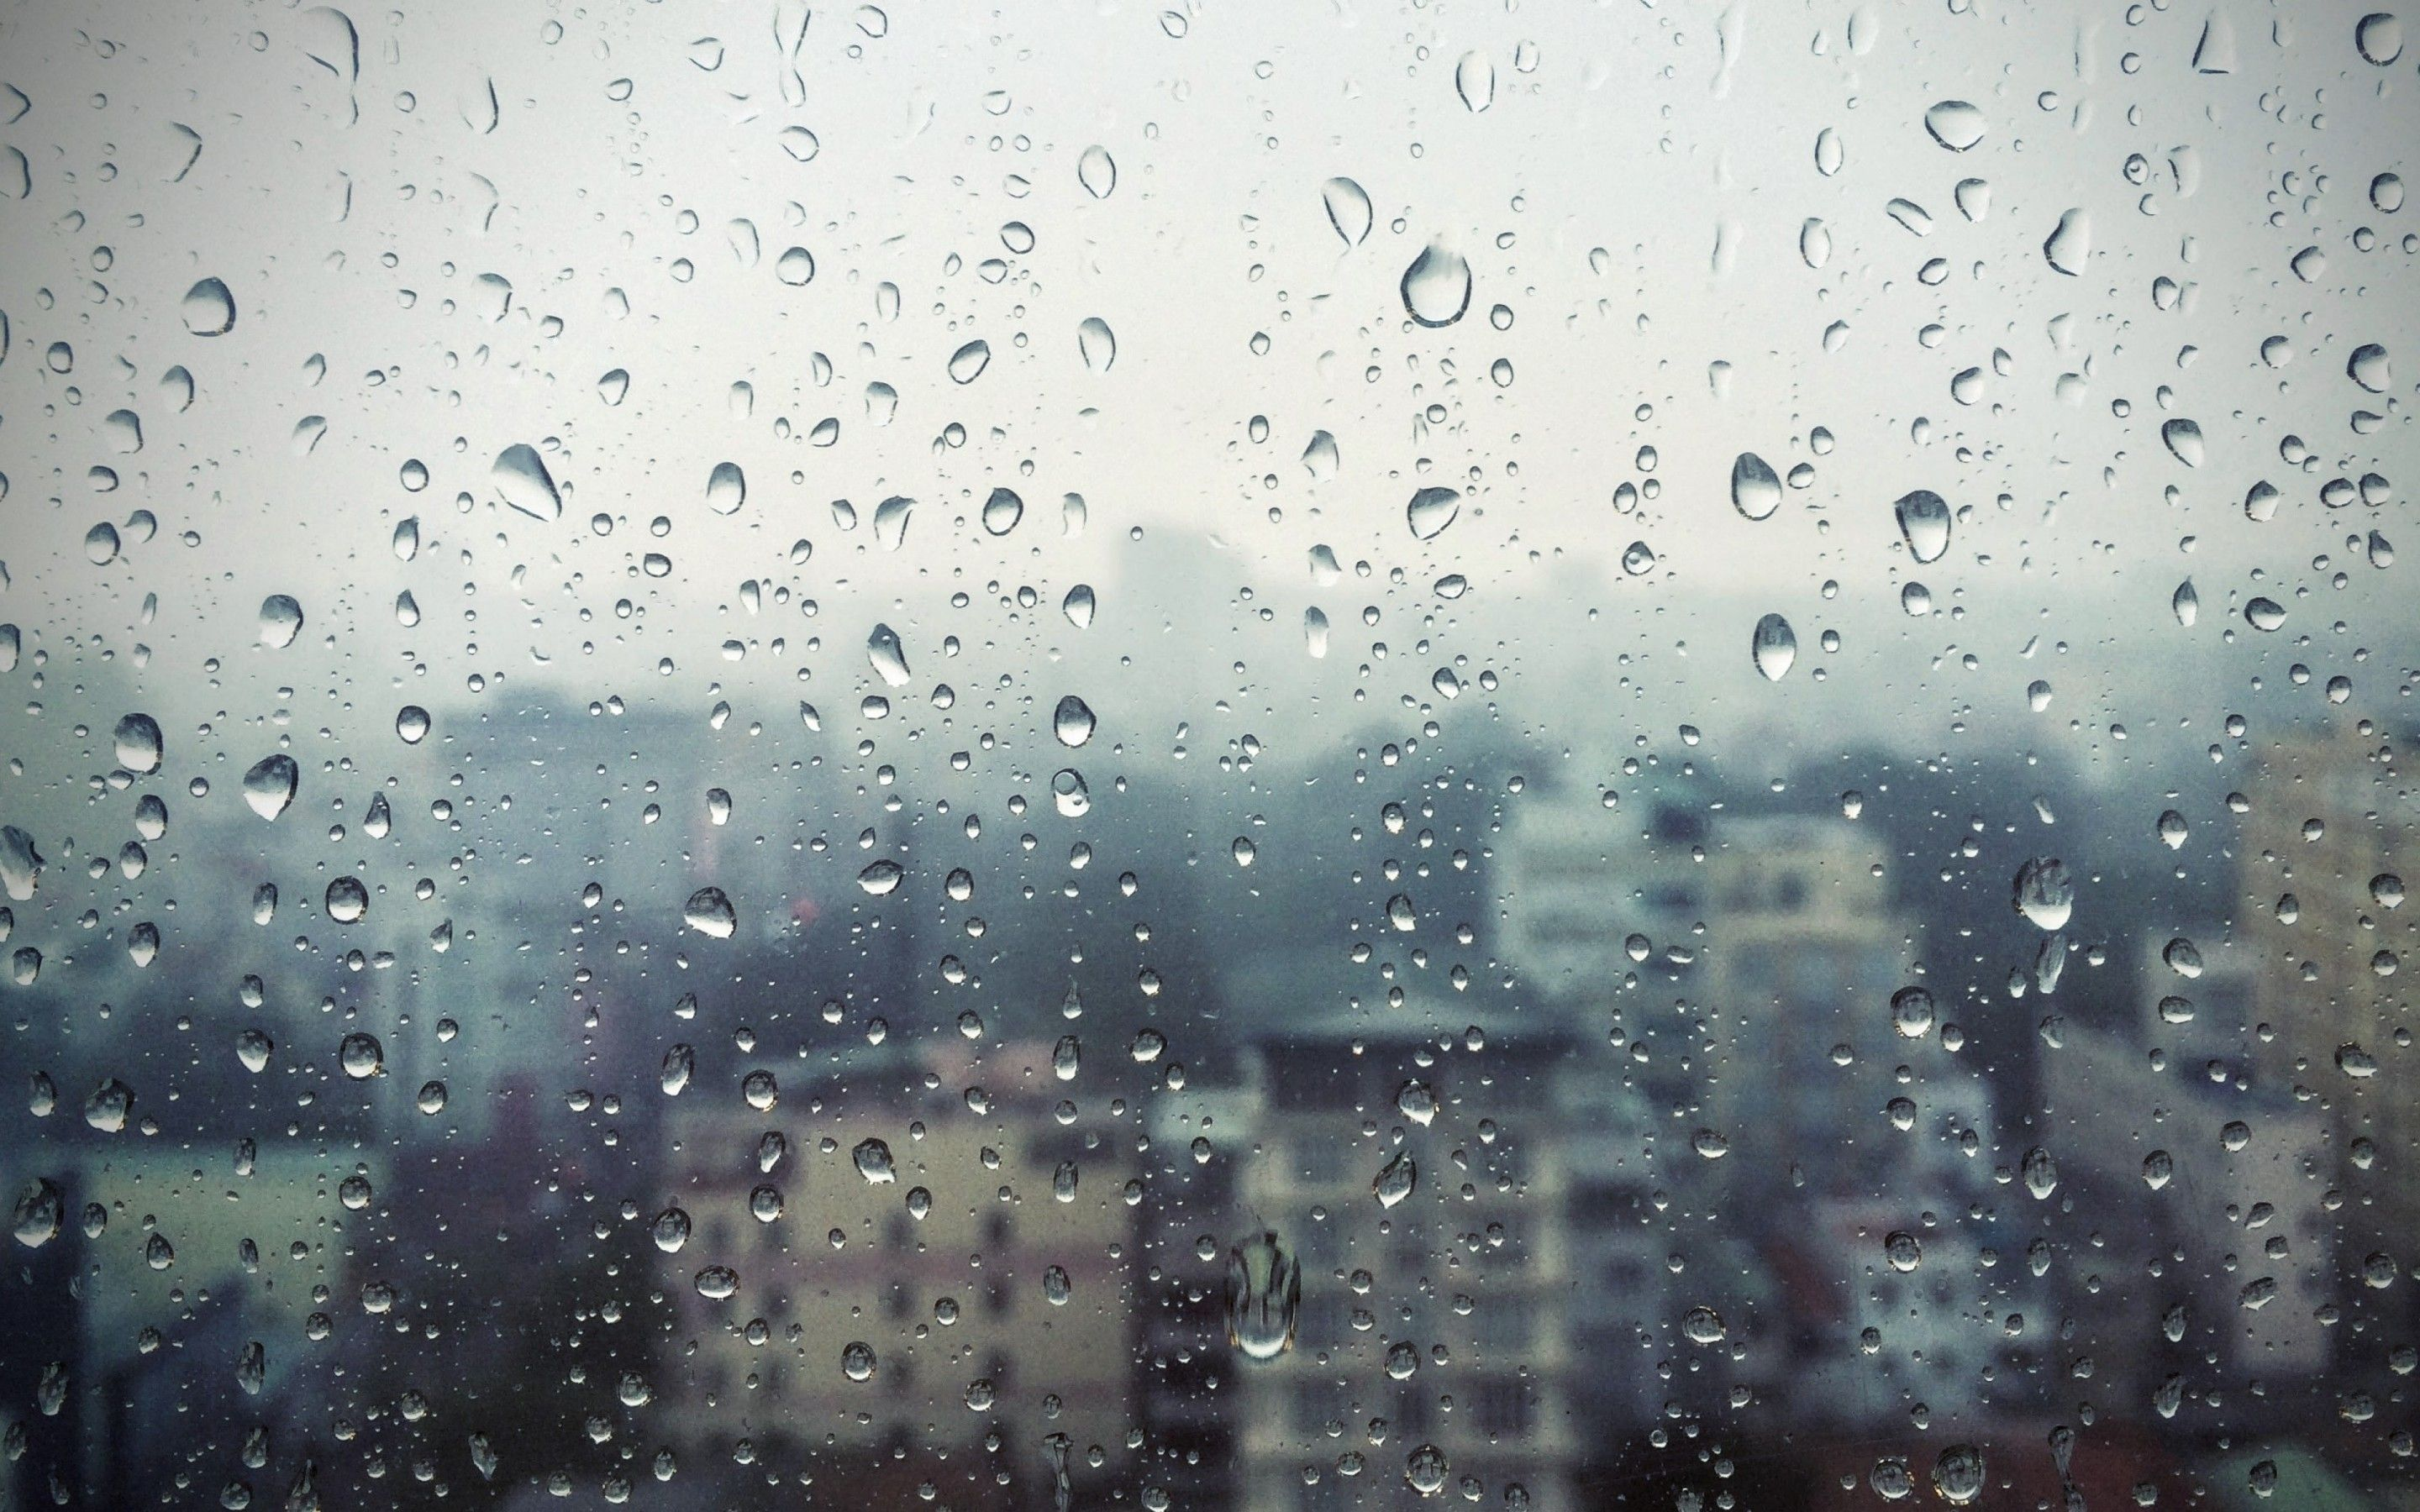 Cute Rainy Weather Wallpapers Rain Wallpapers Top Free Rain Backgrounds Wallpaperaccess